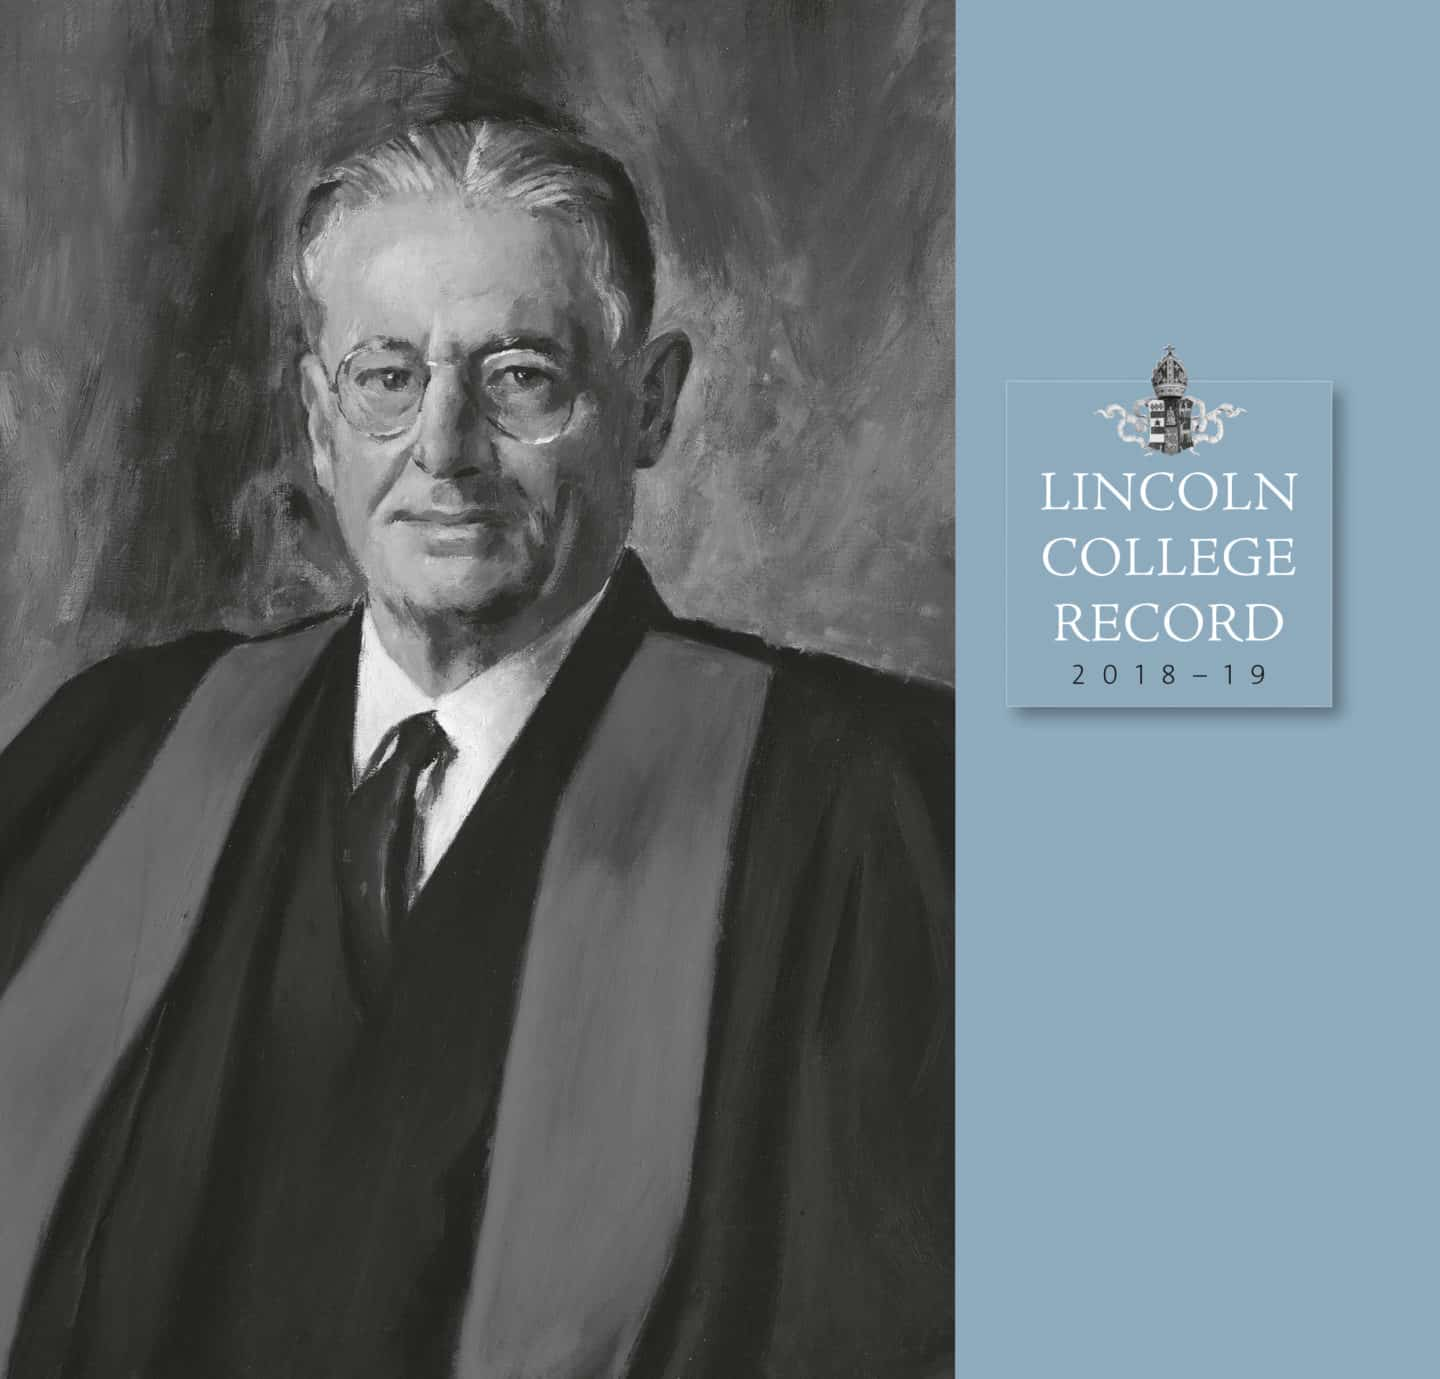 Front cover of the Lincoln College Record